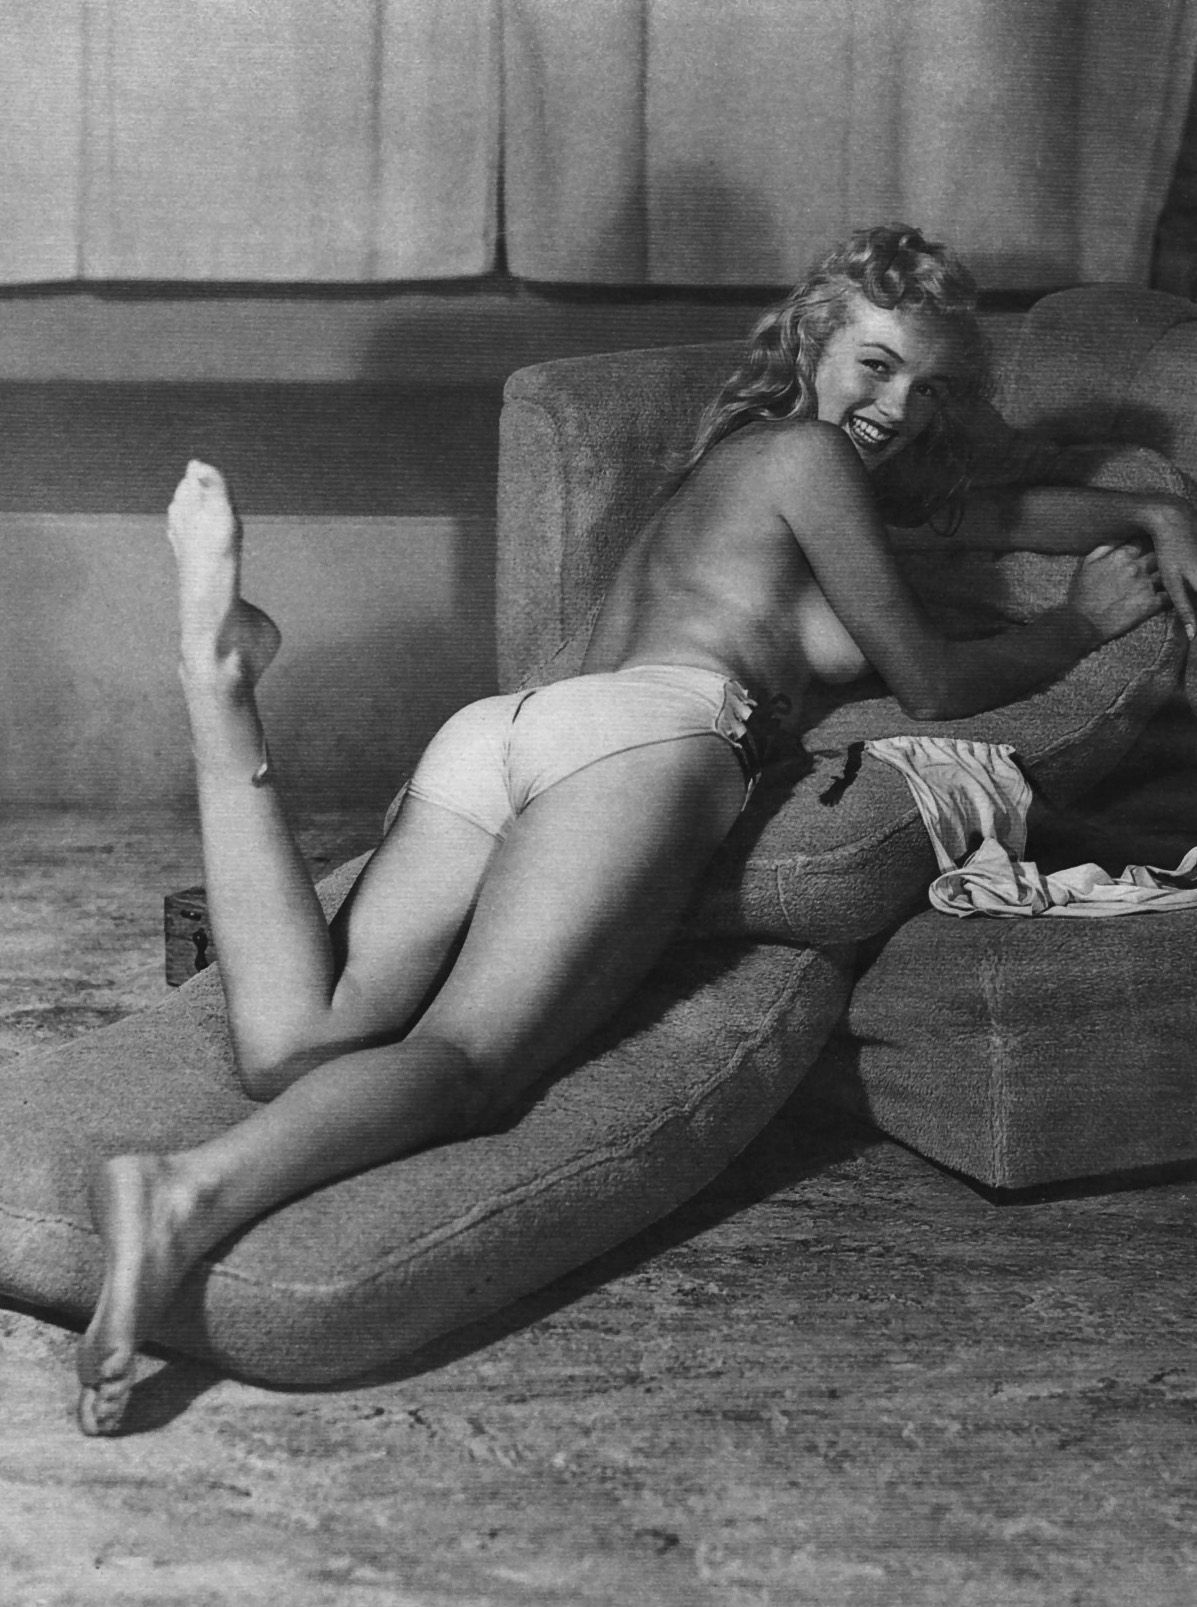 Valuable Naked photos of marilyn monroe can